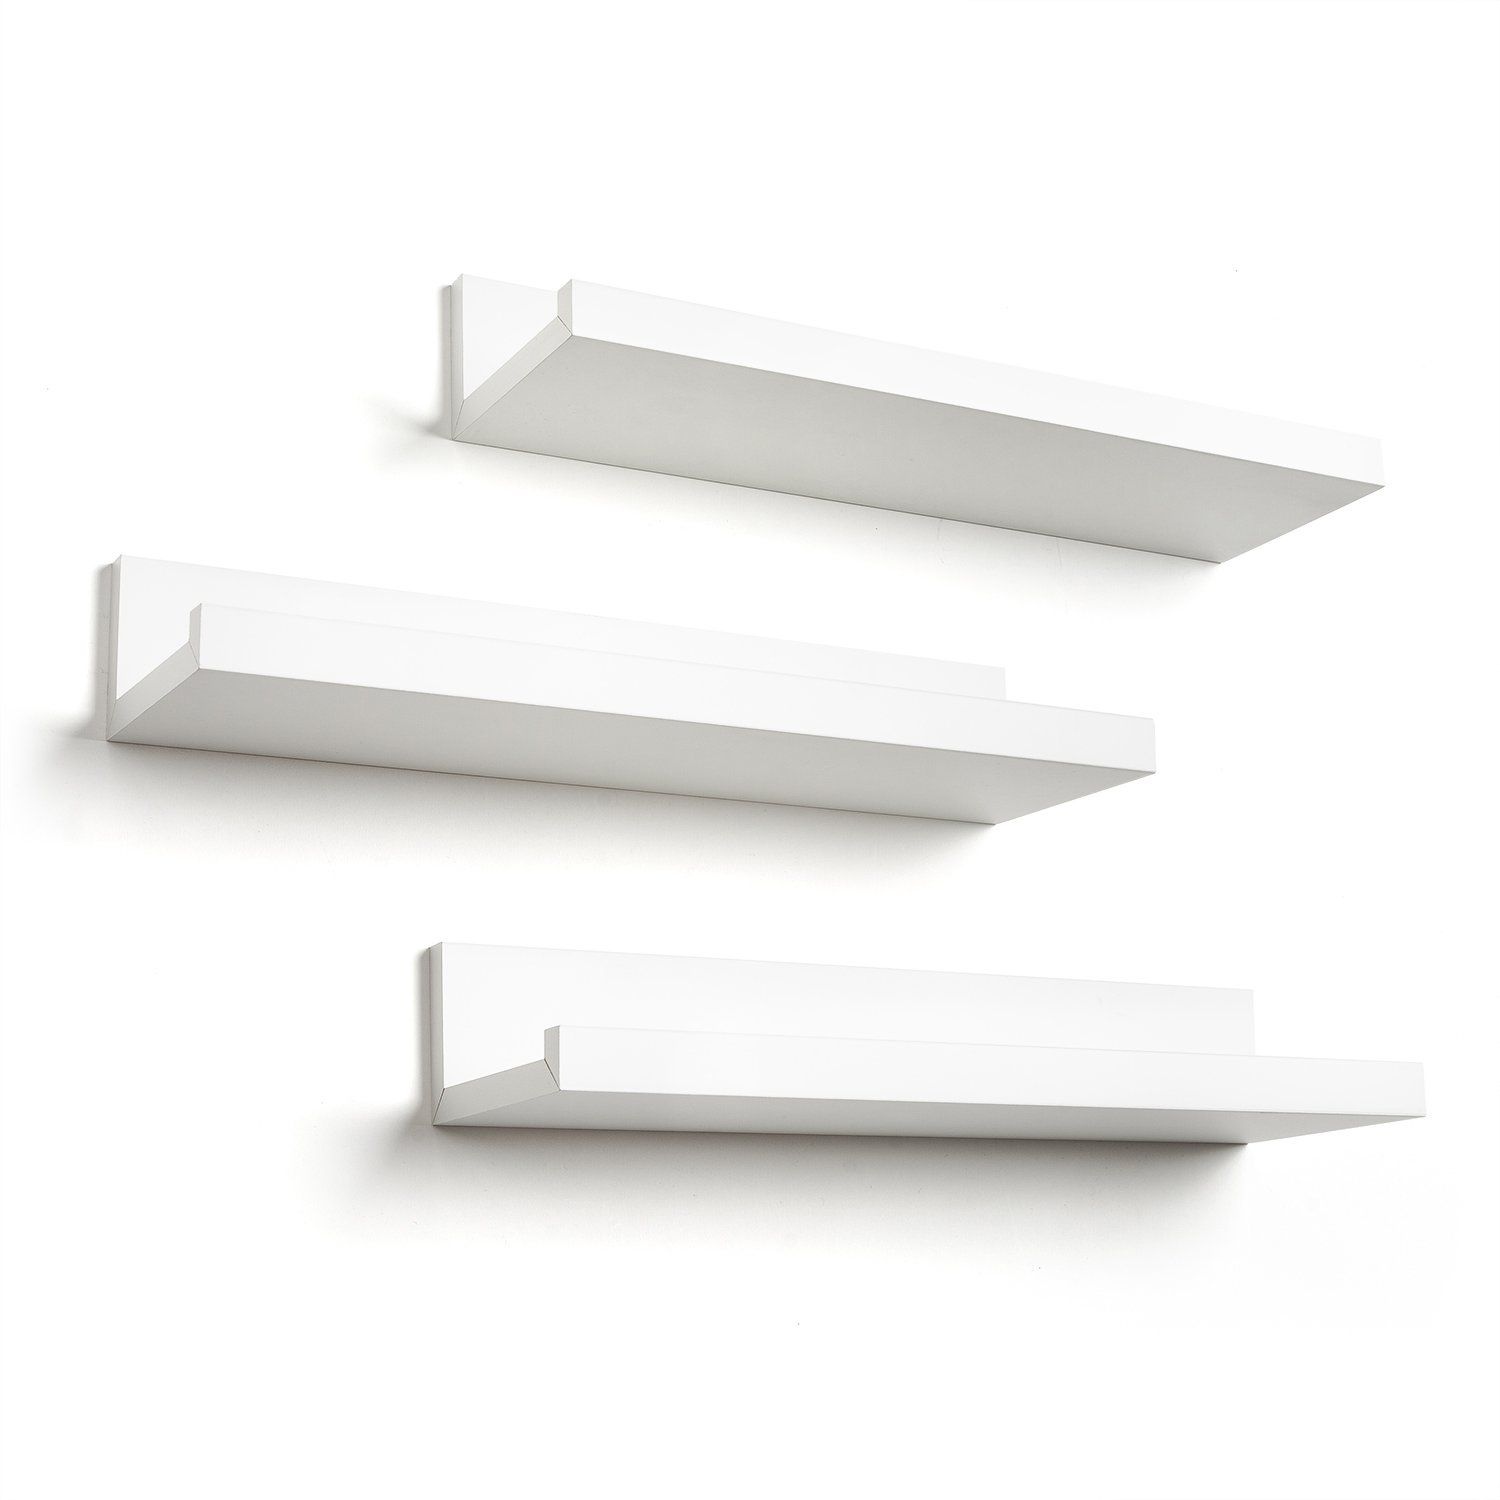 Set Of Three 14inch Floating Wall Shelves By Americanflat White Click Image For More De Floating Wall Shelves Floating Wall Shelves White Wall Shelf Display